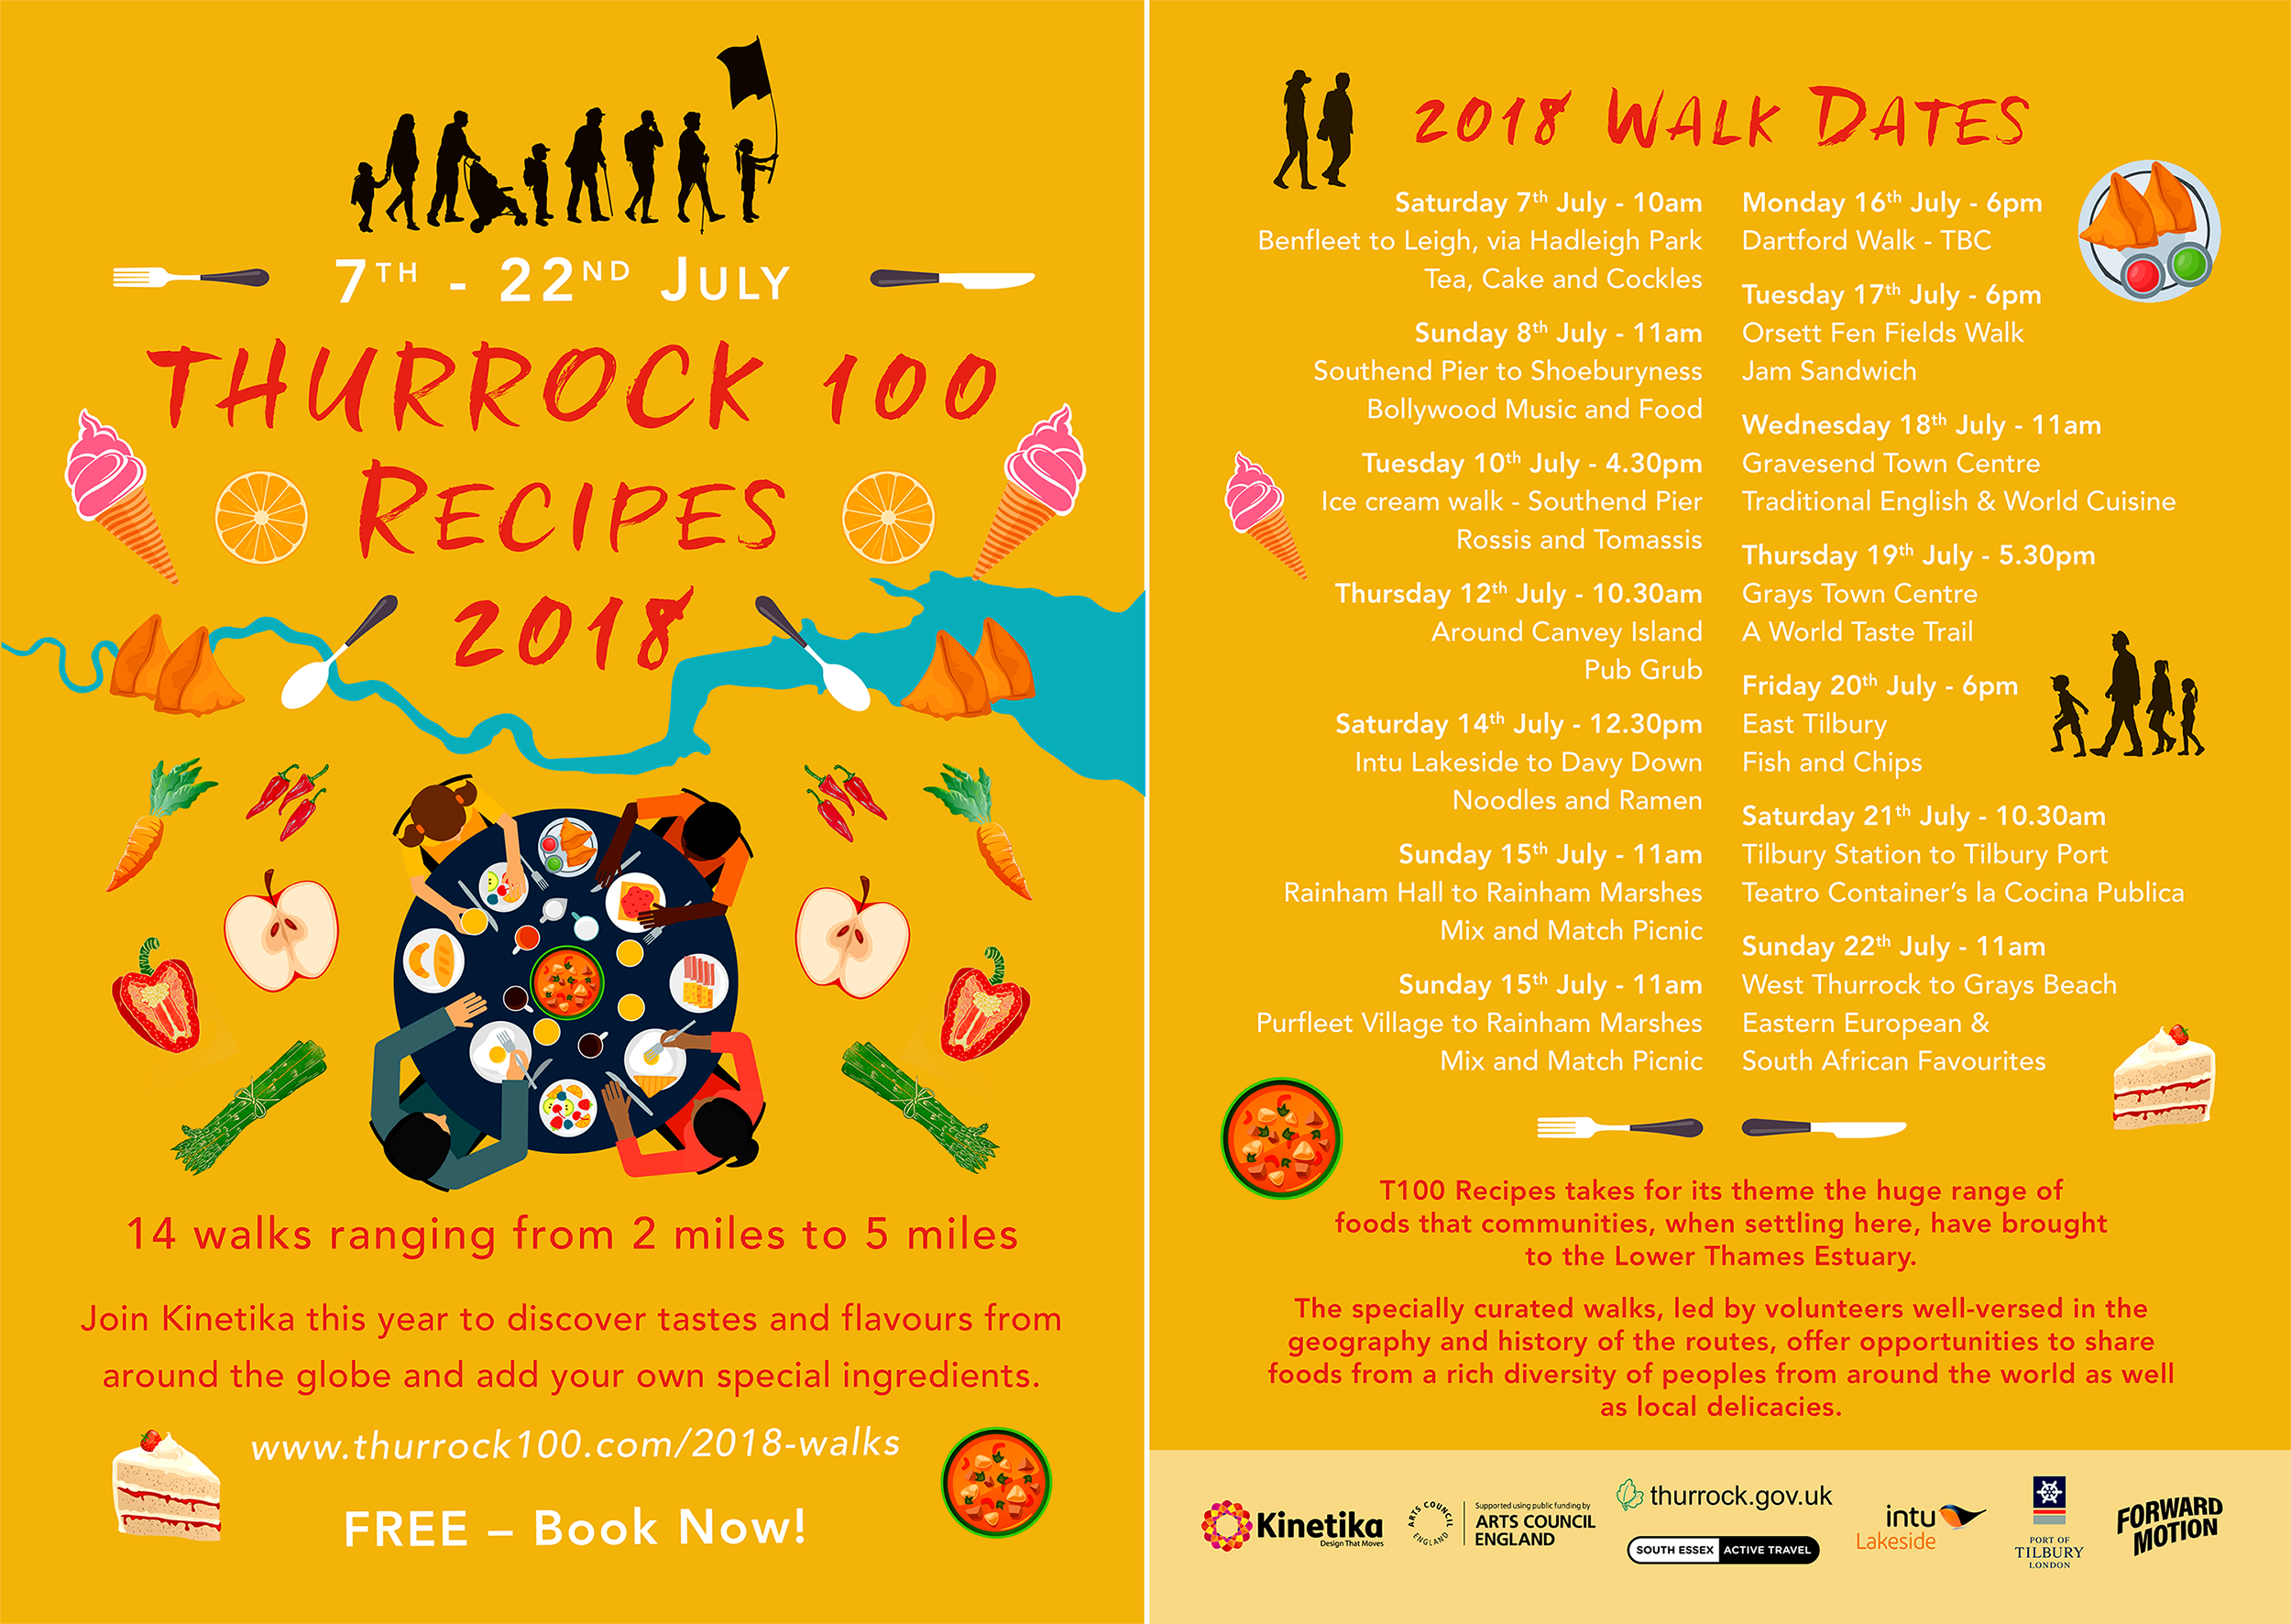 Thurrock 100 Recipes 2018 flyer